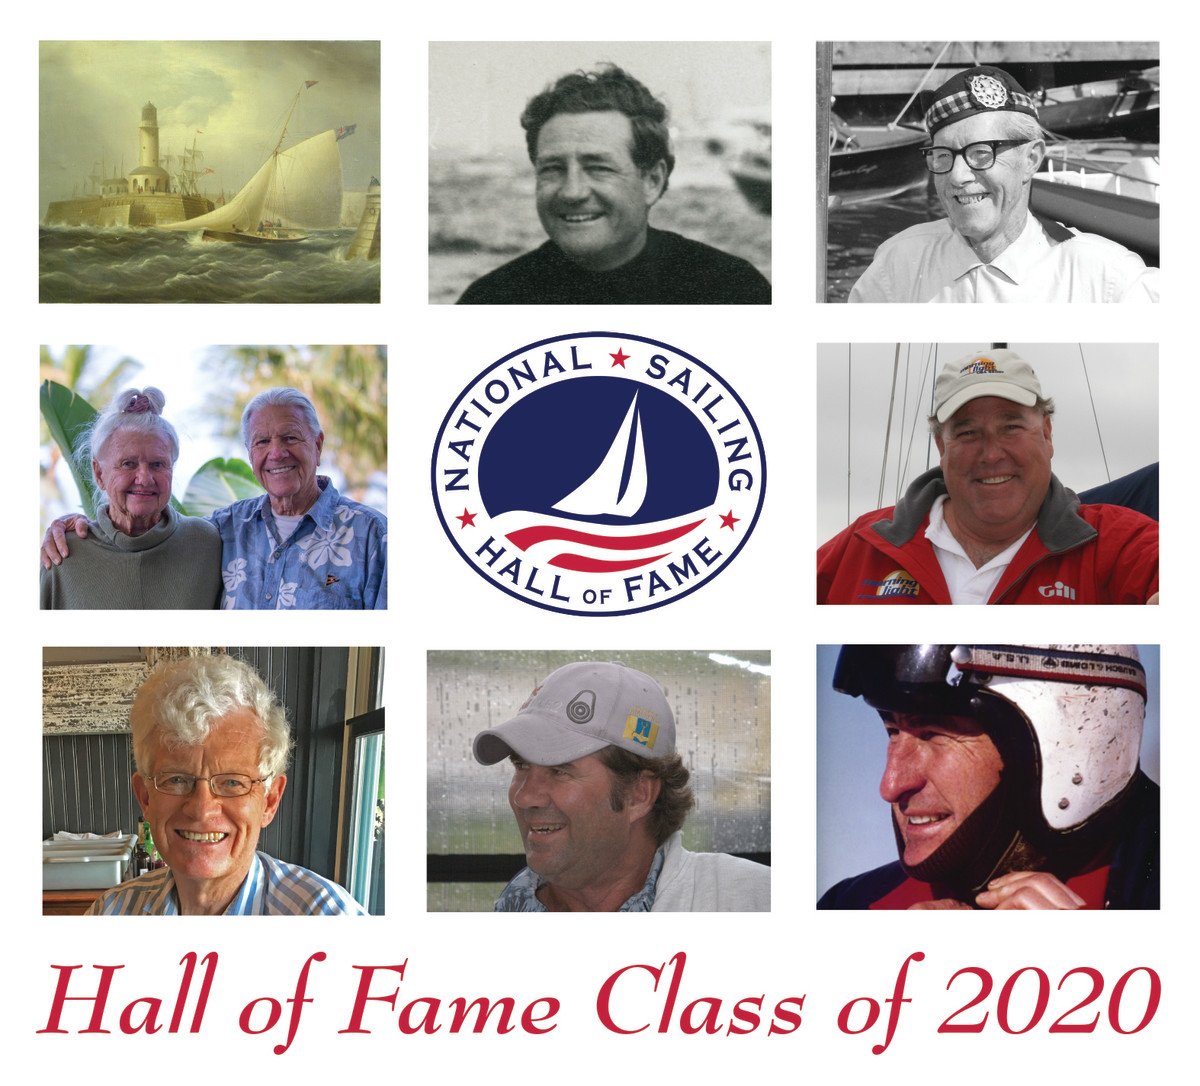 From top left moving clockwise: James E. Buttersworth, Briggs Cunningham, Jr., Gordon Douglass, Robbie Haines, Jr., Bill Mattison, Dave Perry, John Rousmaniere and Diane and Hoyle Schweitzer.